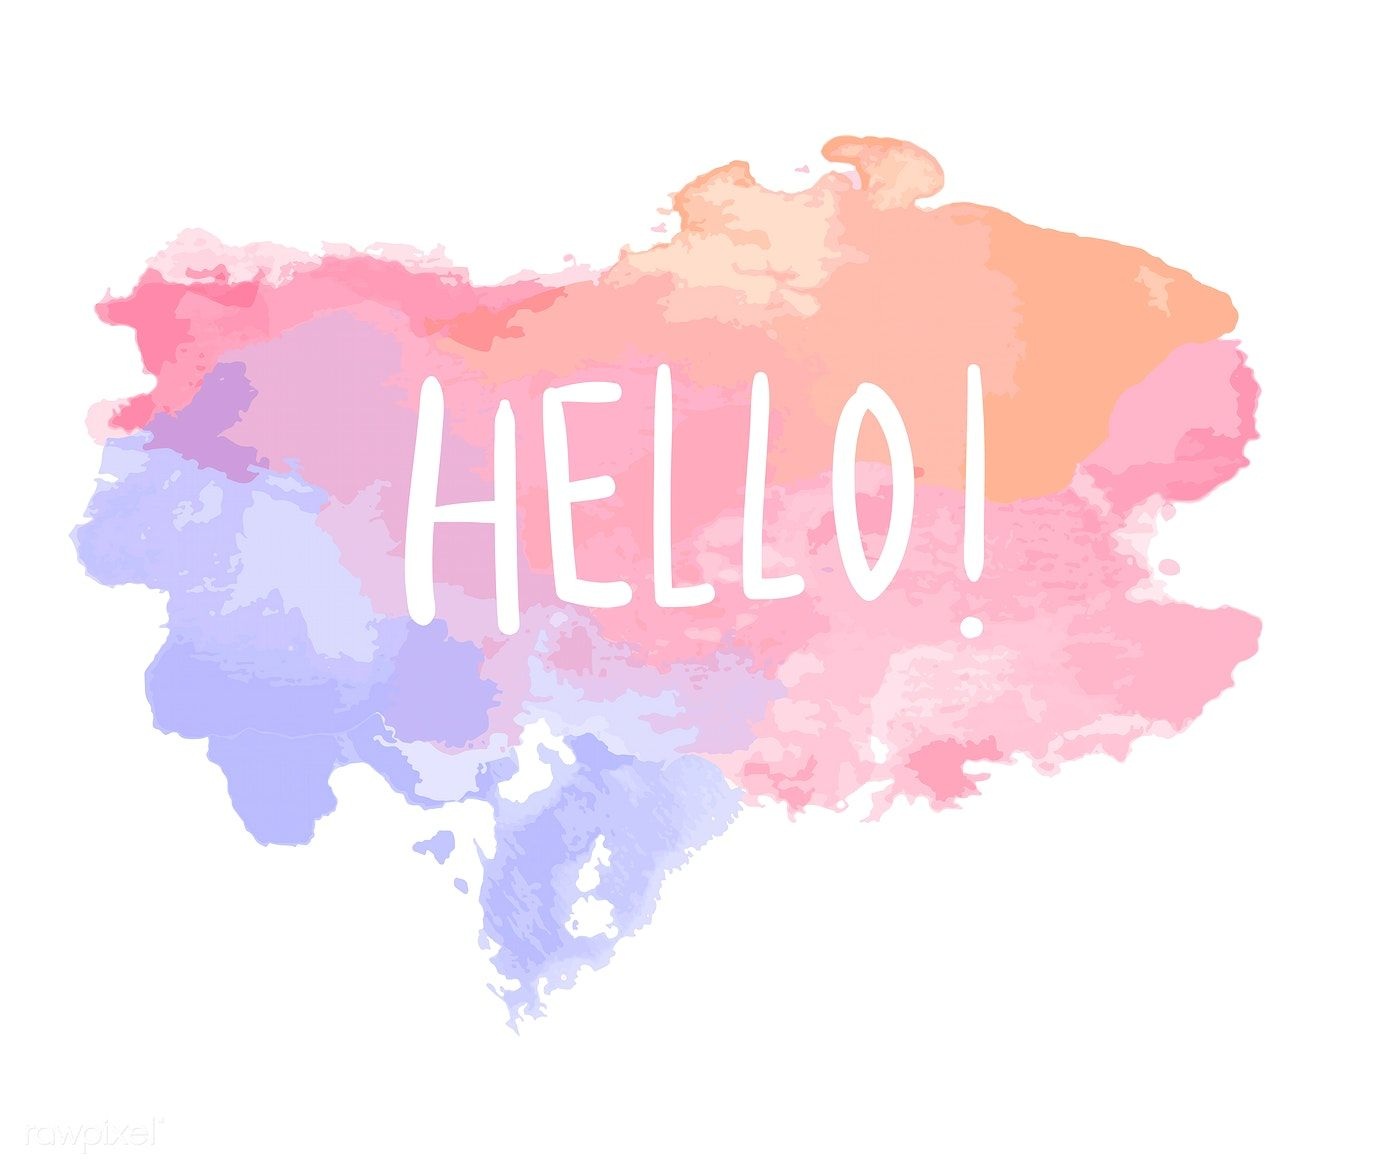 The Word Hello On A Watercolor Vector Free Image By Rawpixel Com